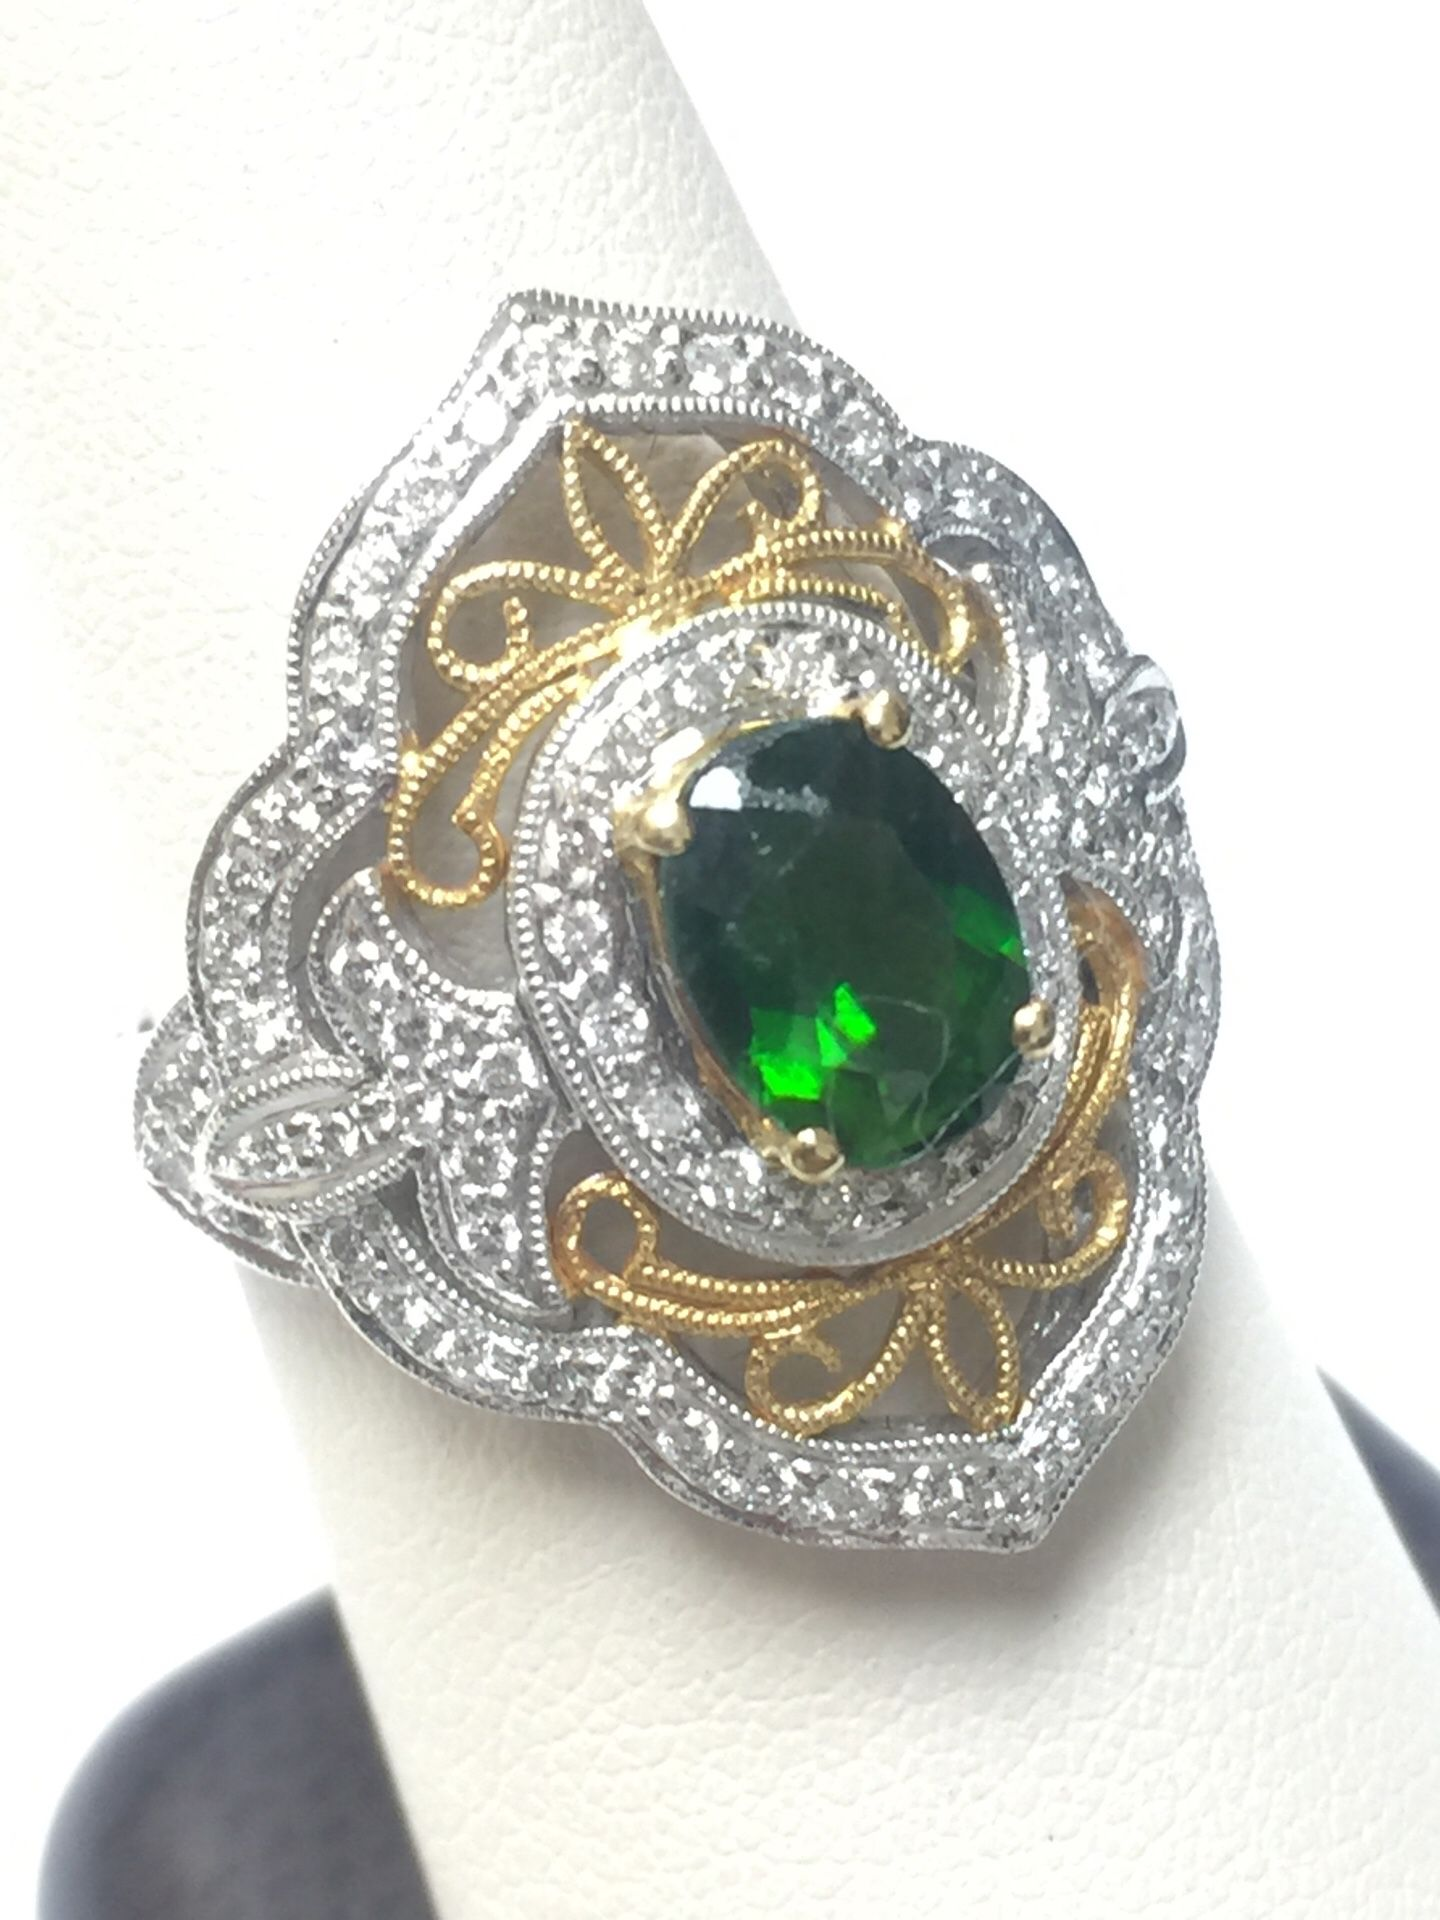 18 k yellow gold and 14k white gold ring size 7.5